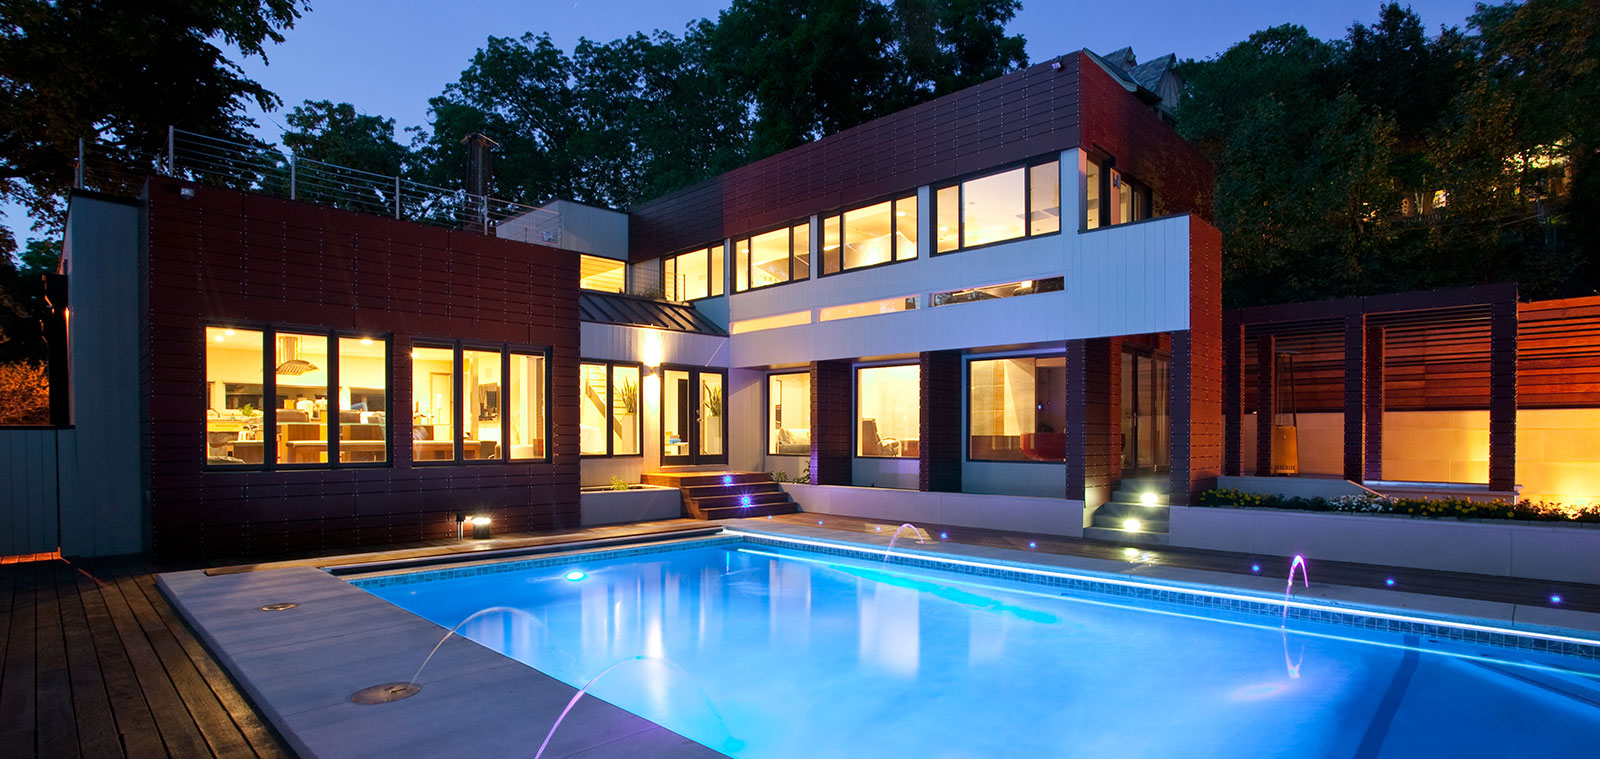 Drakes Residence - Modern House With Stunning Pool By Faust Construction